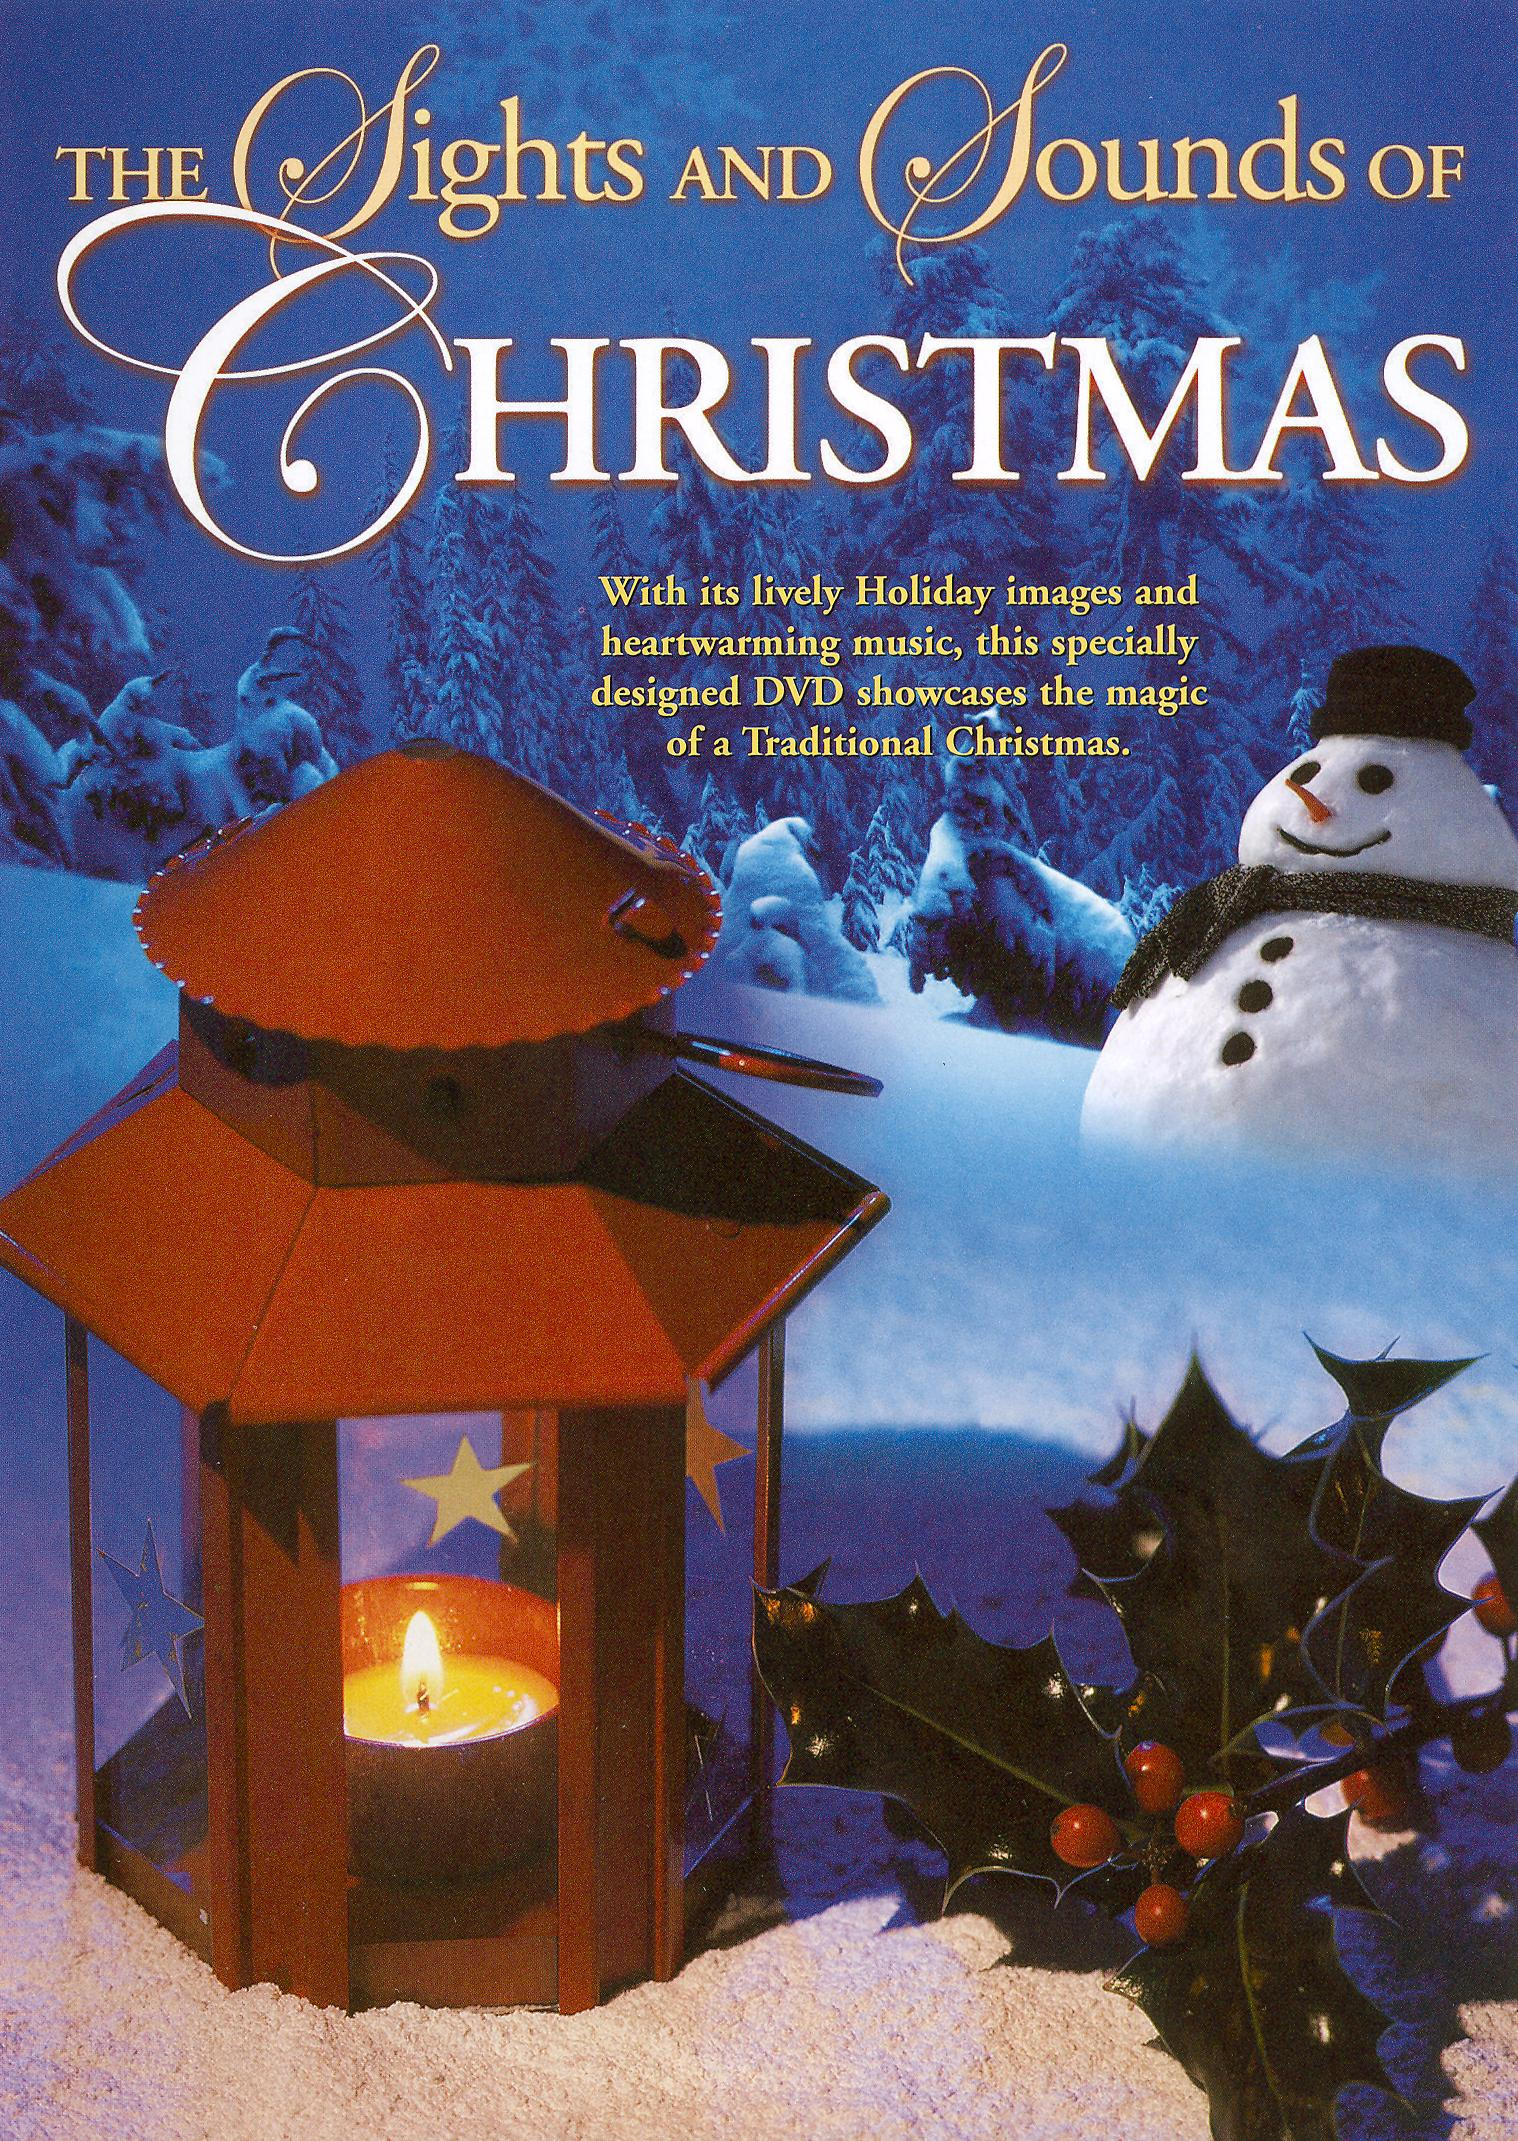 The Sights and Sounds of Christmas (2005) - | Cast and Crew | AllMovie